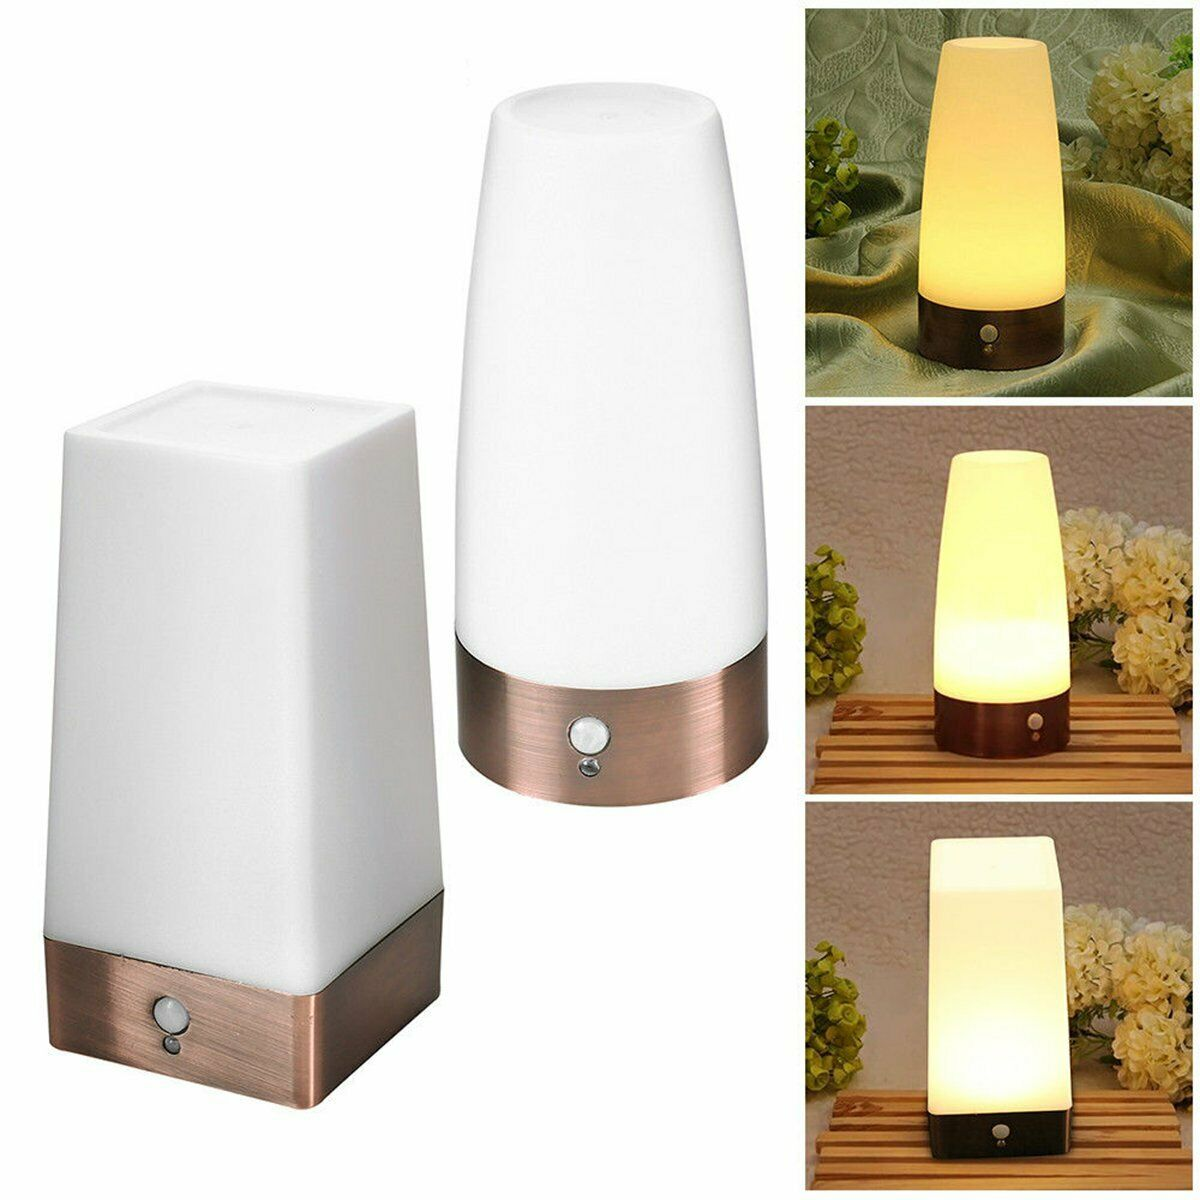 Us 4 35 Off Wireless Pir Sensor Living Room Table Light Led Night Bedside Lamp Battery Ed Warm White Xnc In Lamps